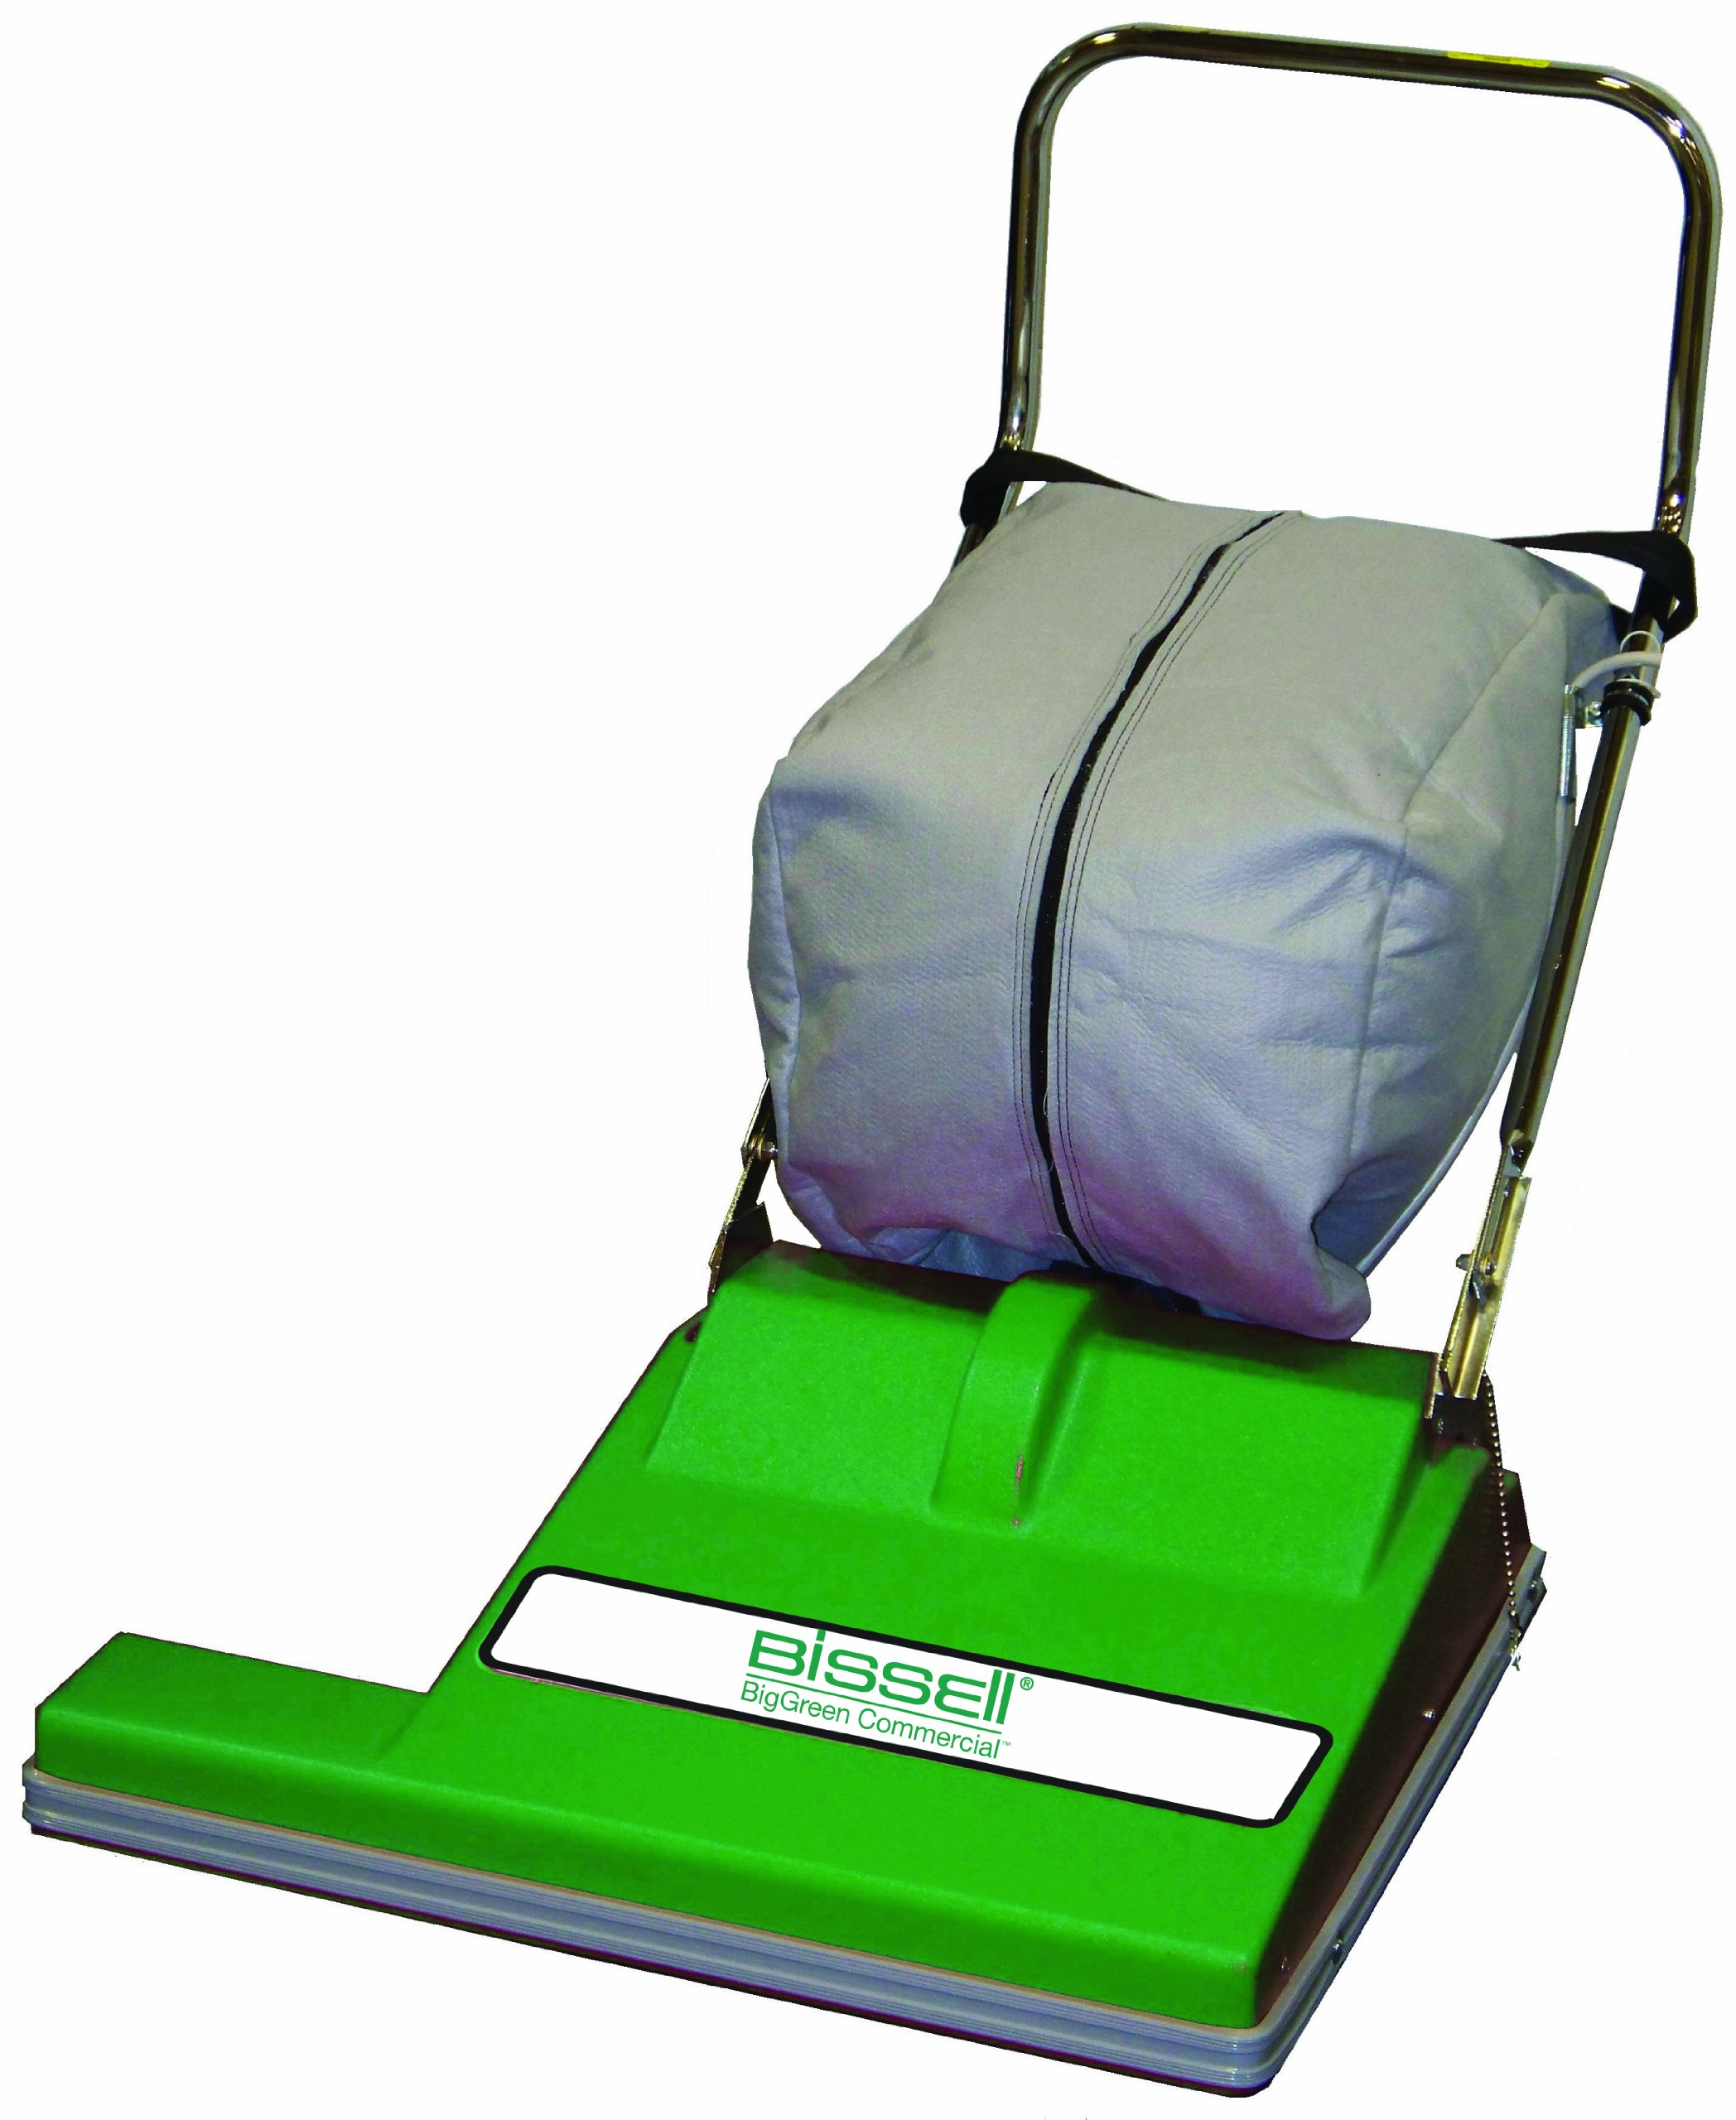 BISSELL BigGreen Commercial BG-CC28 Extra Wide Vacuum Cleaner, 28'' Cleaning Path, 36.5'' Height, 29'' Length, 36'' Width by Bissell (Image #1)